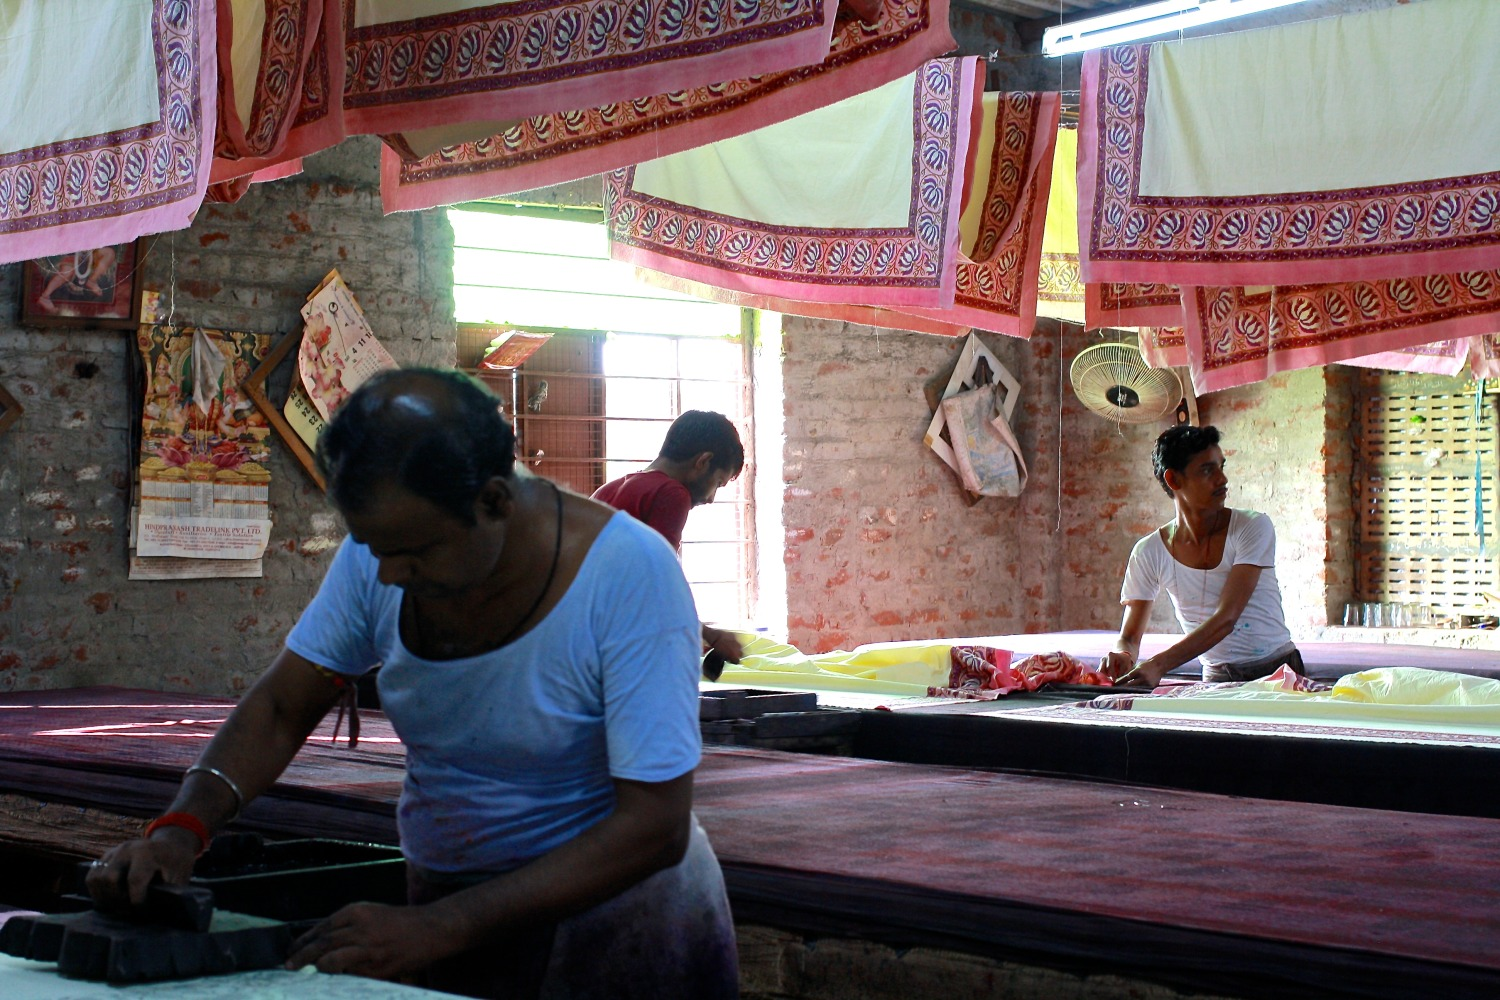 India: Fair Trade in Action Part 1